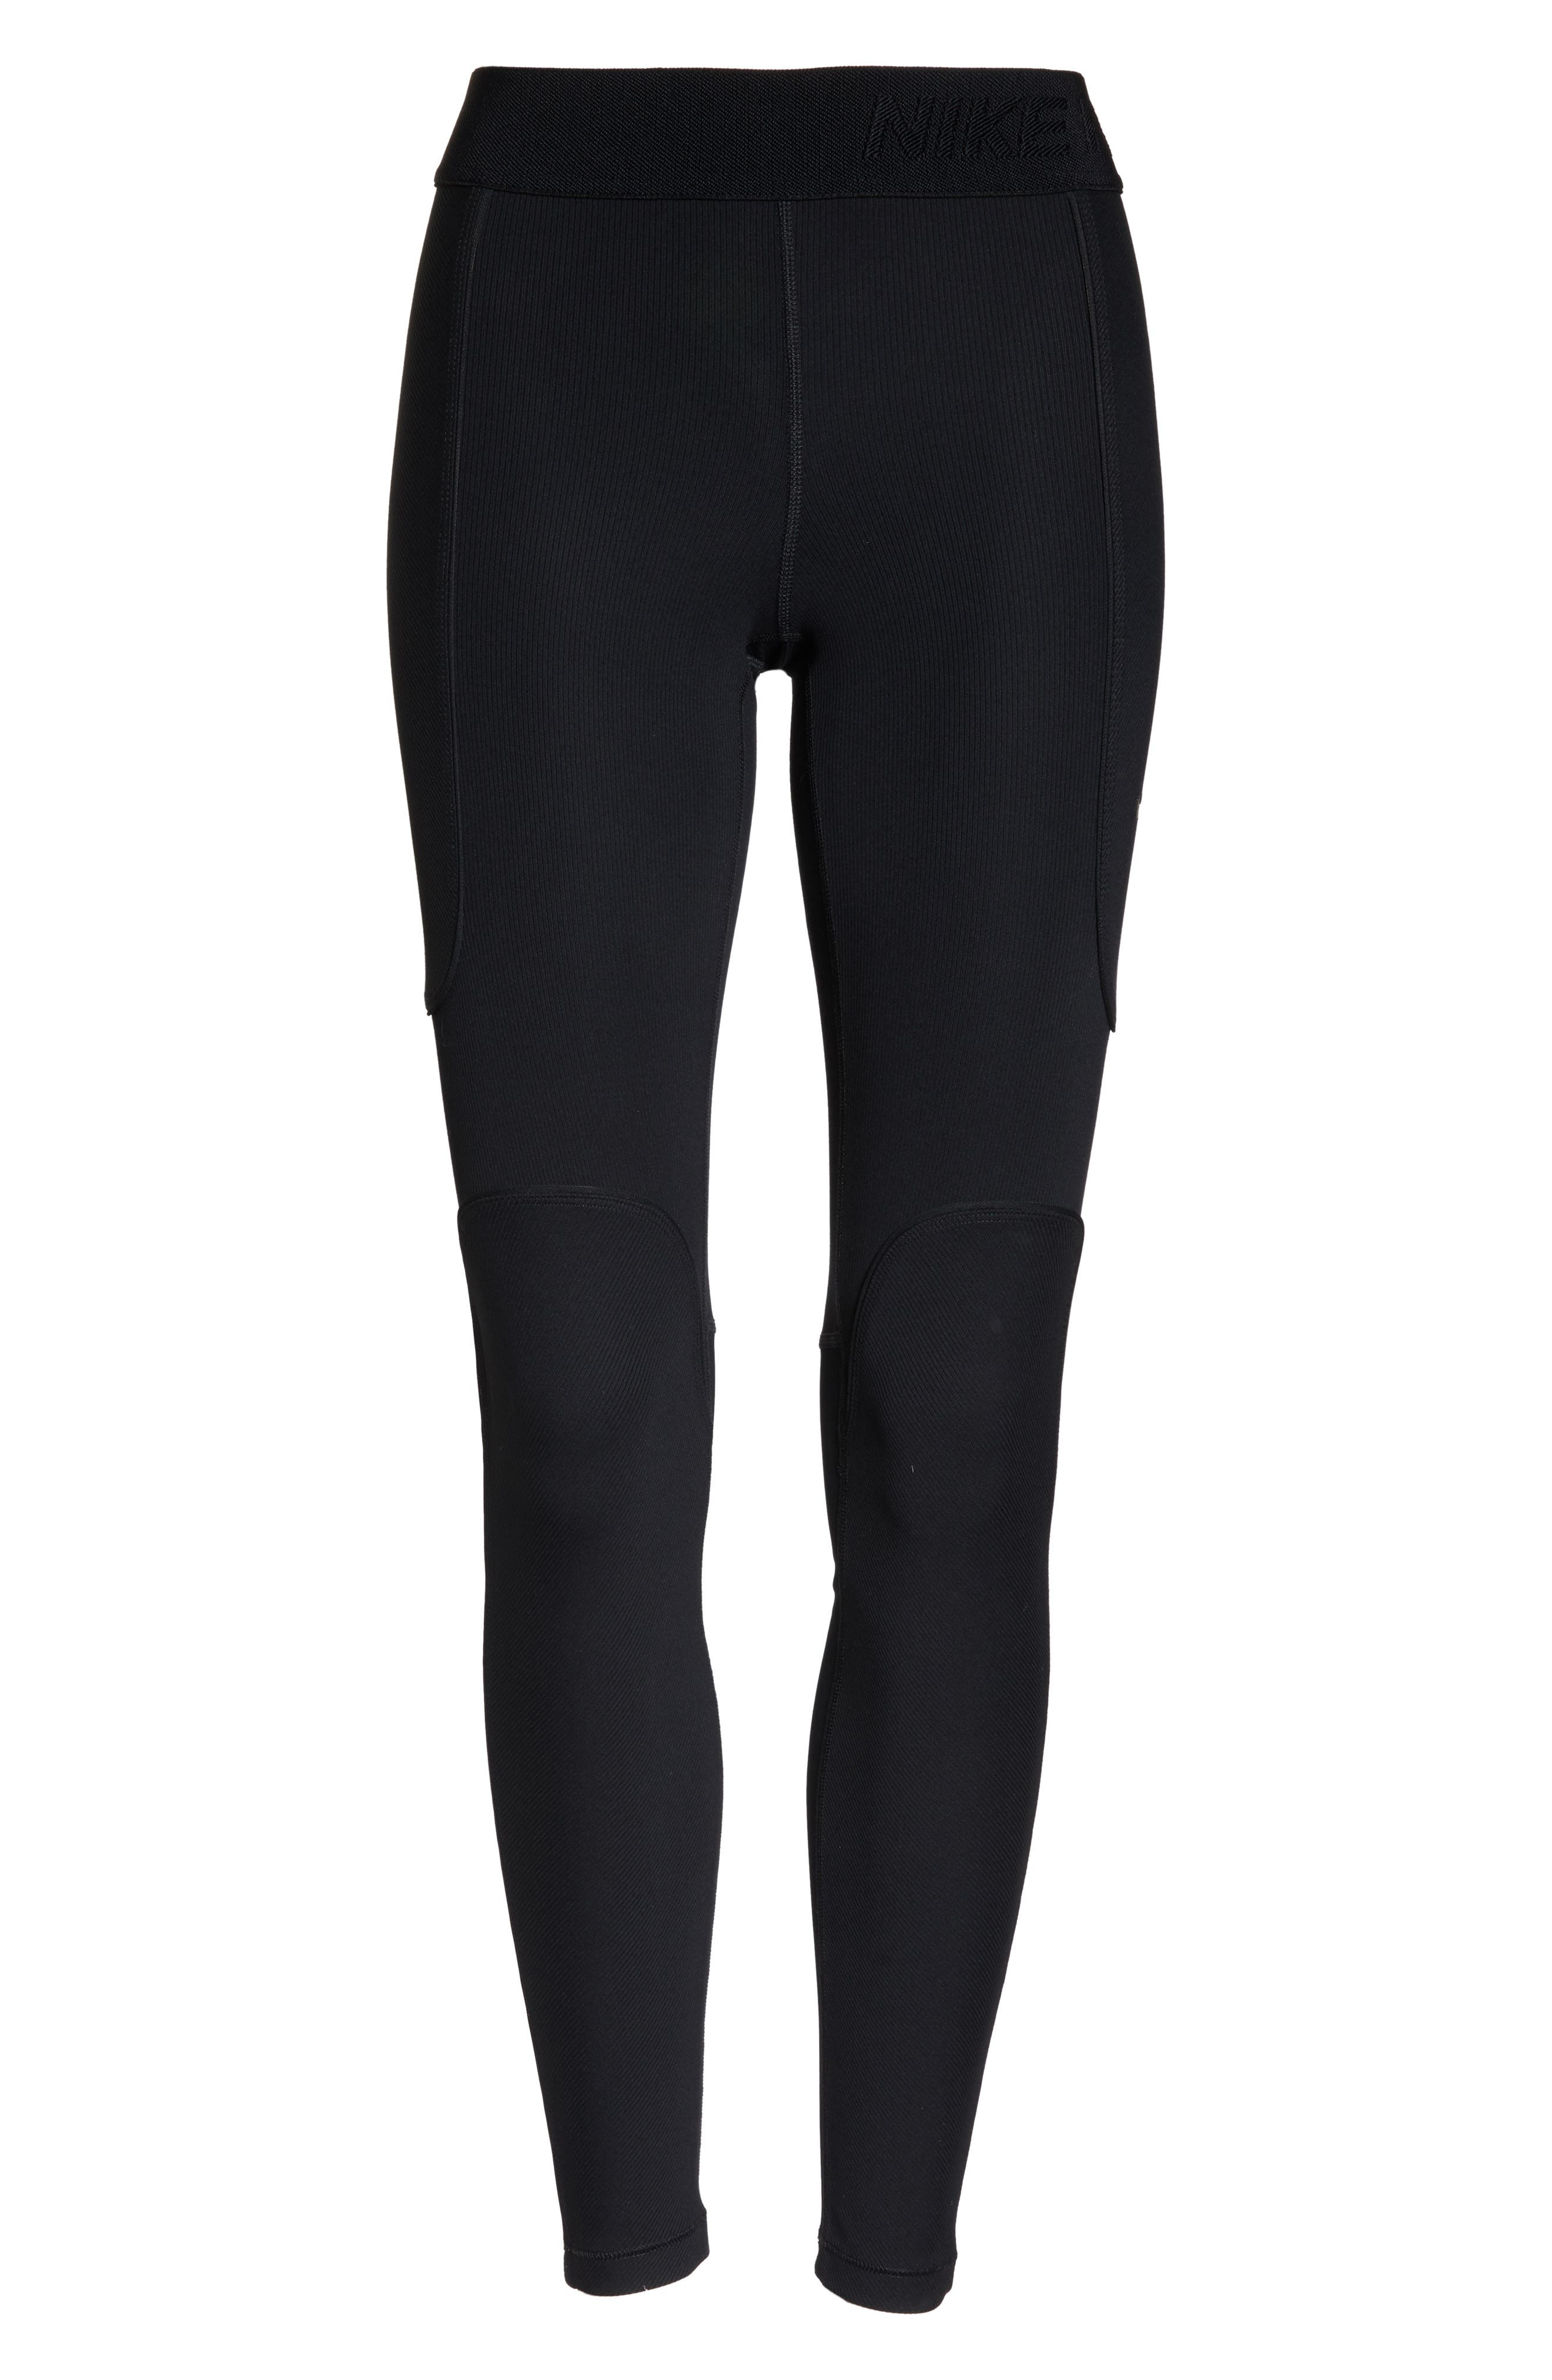 The Nike Pro HyperCool Women's Ribbed Tights,                             Alternate thumbnail 7, color,                             BLACK/ CLEAR